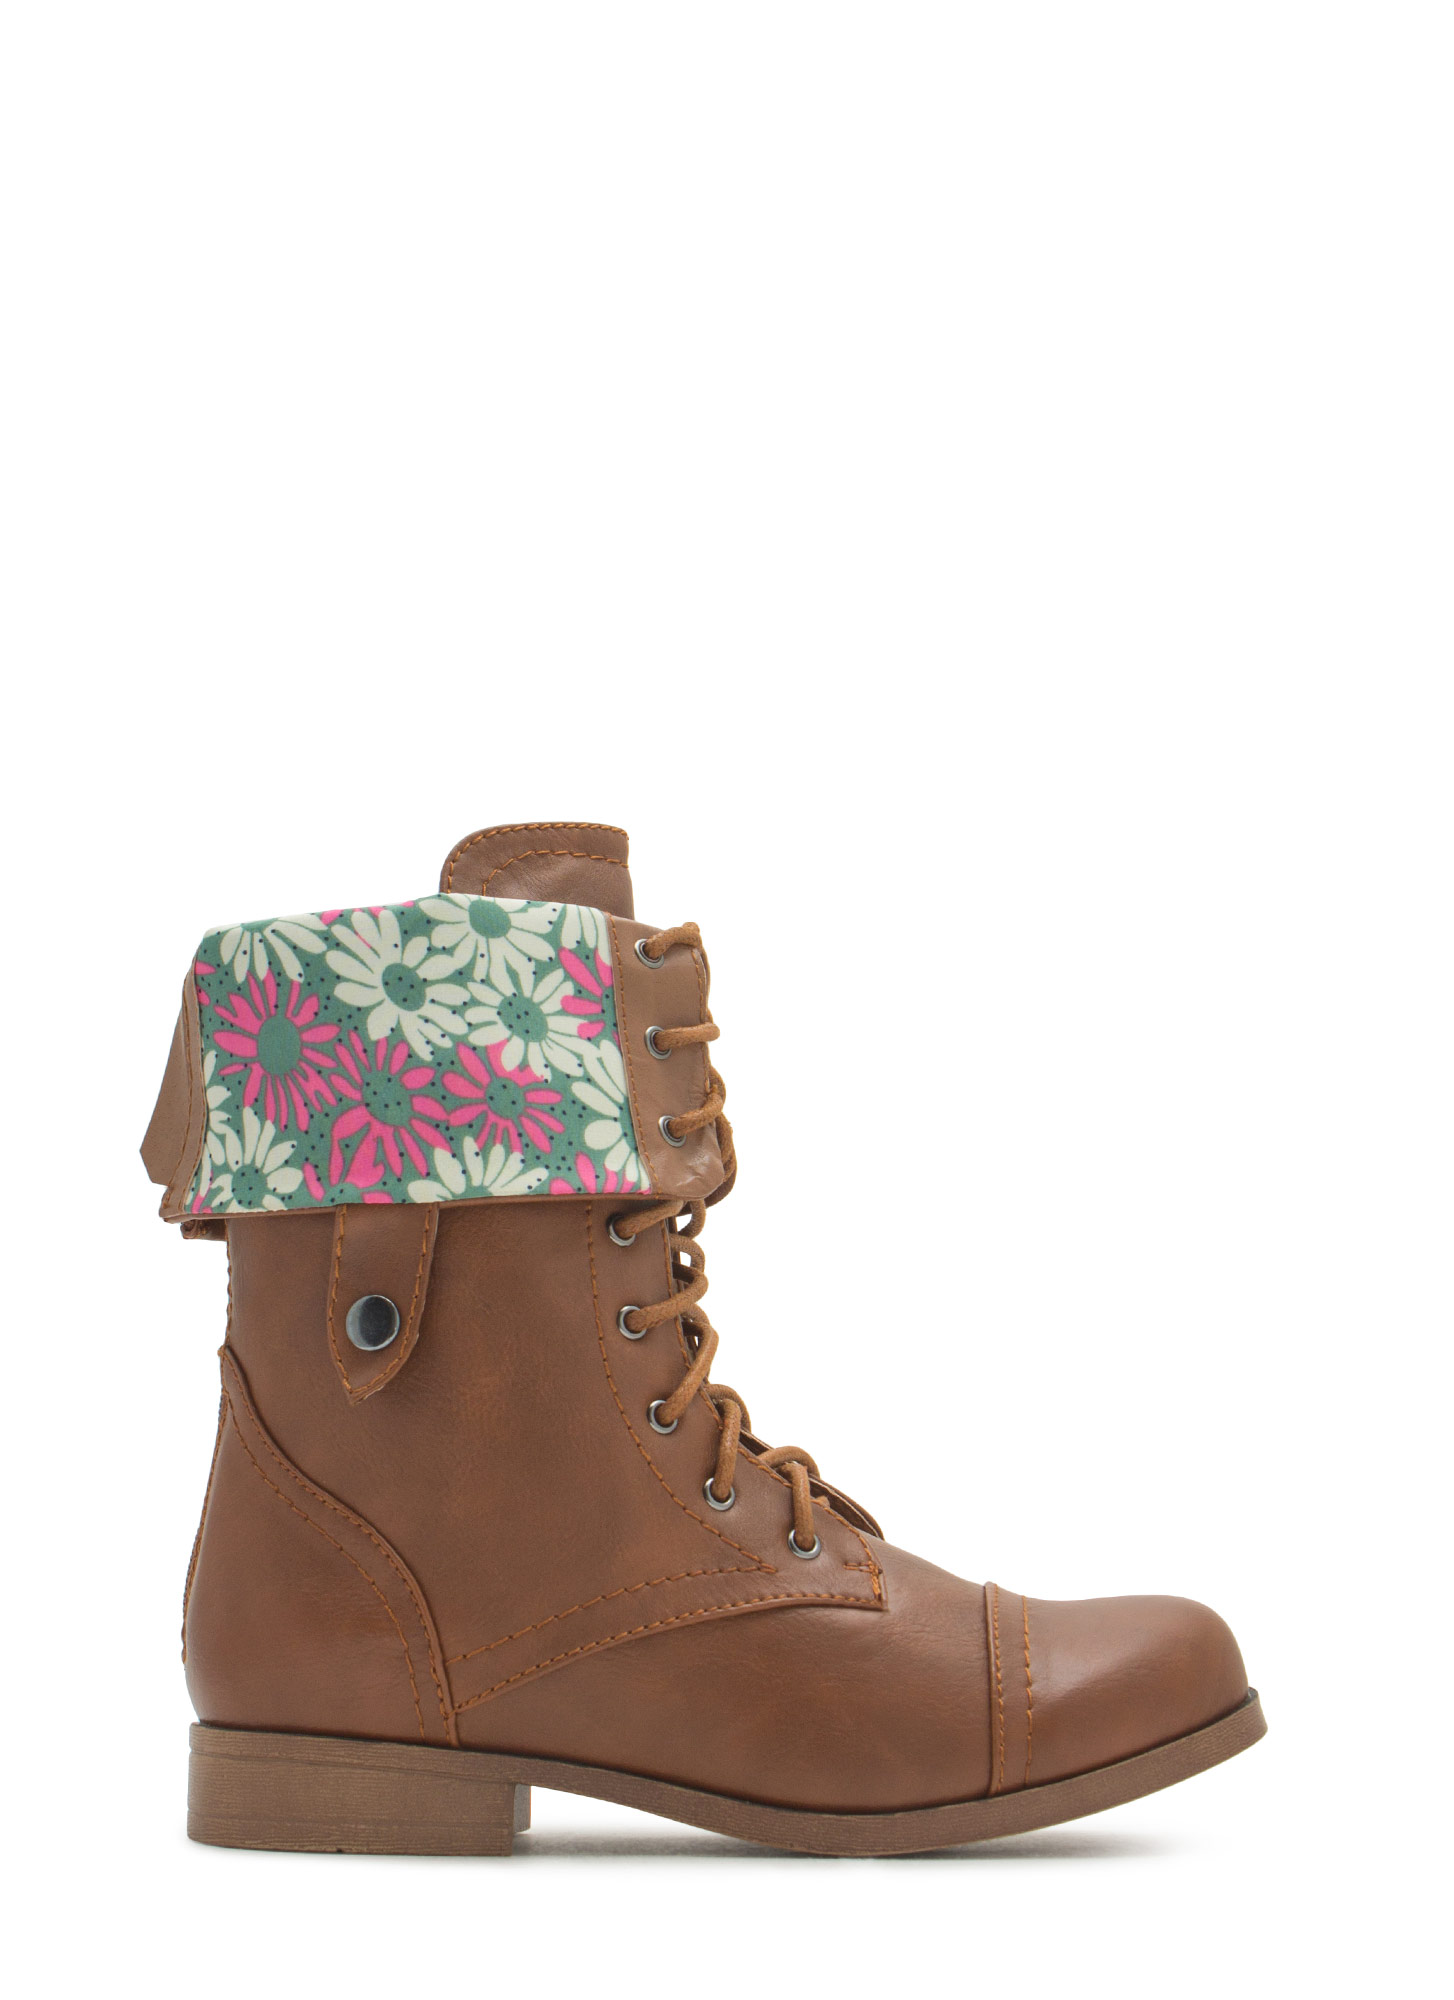 Cuff It Down Lace-Up Boots COGNAC